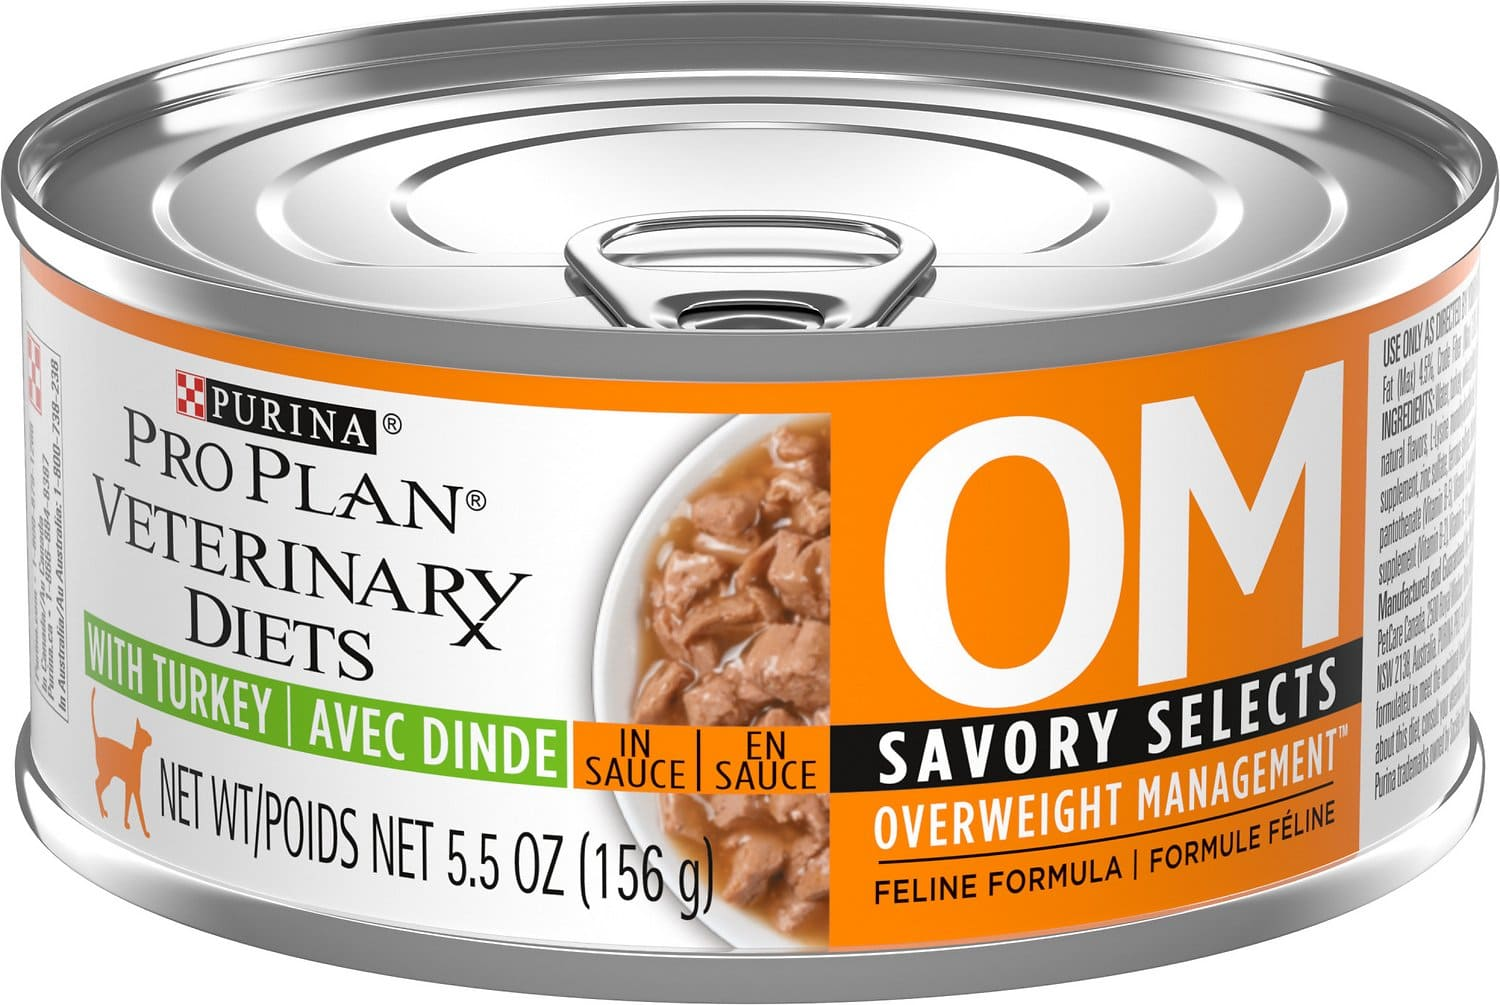 Purina Pro Plan Veterinary Diets OM Overweight Management Savory Selects Canned Formula 24 x 5.5 oz can Turkey 1